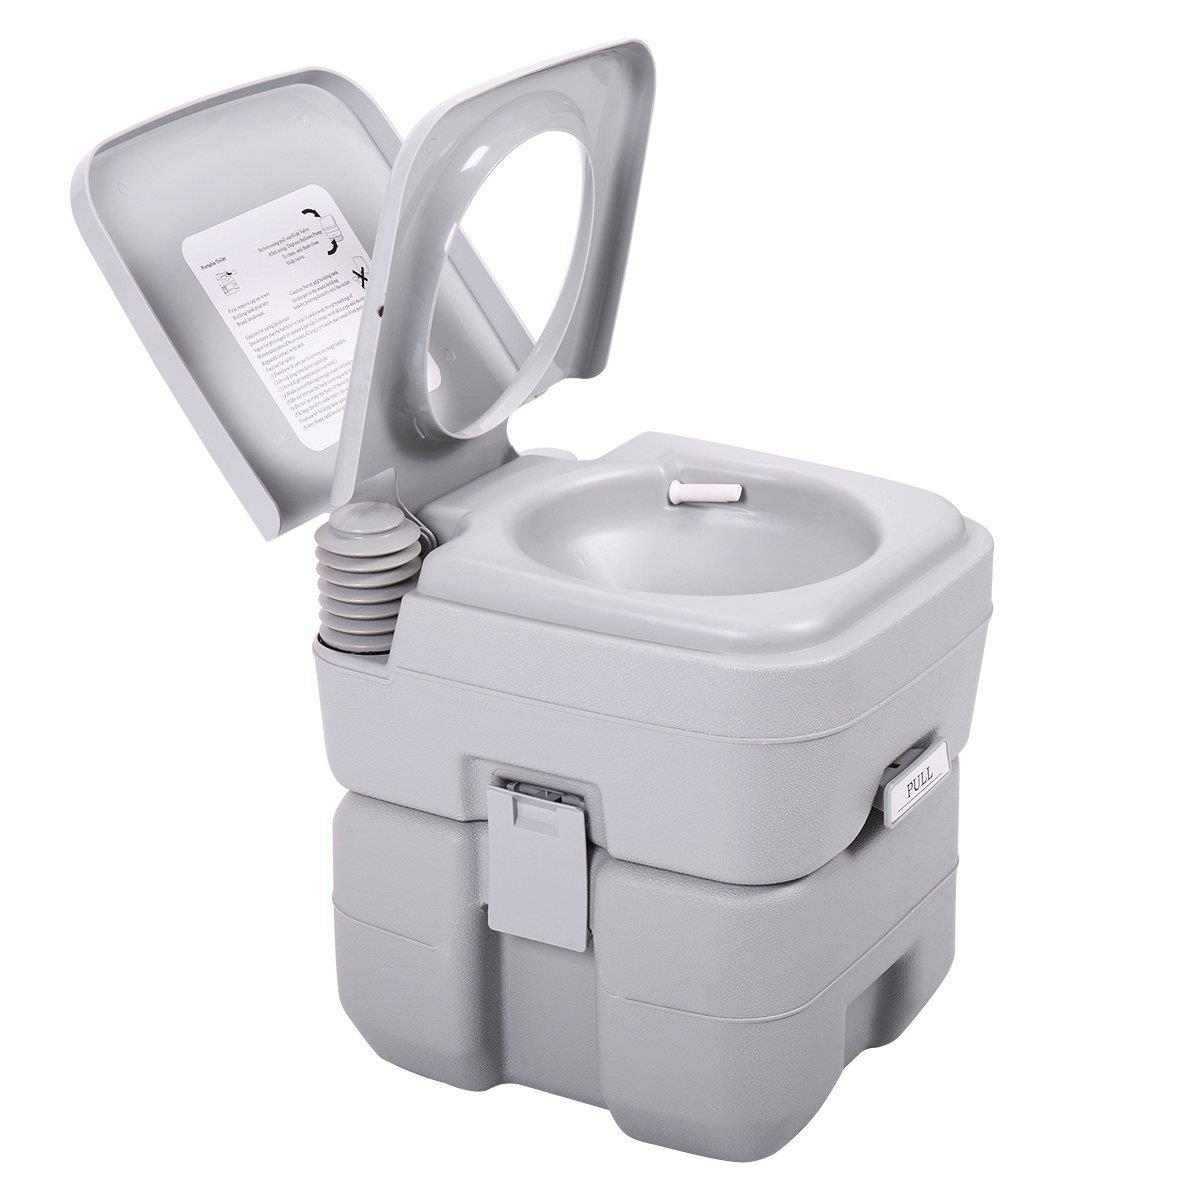 Ktaxon Portable Camping Toilet, 5 Gallon Capacity Leak Proof Compact Porta Potty, up to 50 Flushes, Great for Travel, Camping, RV, Boating,Hiking & Other Outdoor or Indoor Activites